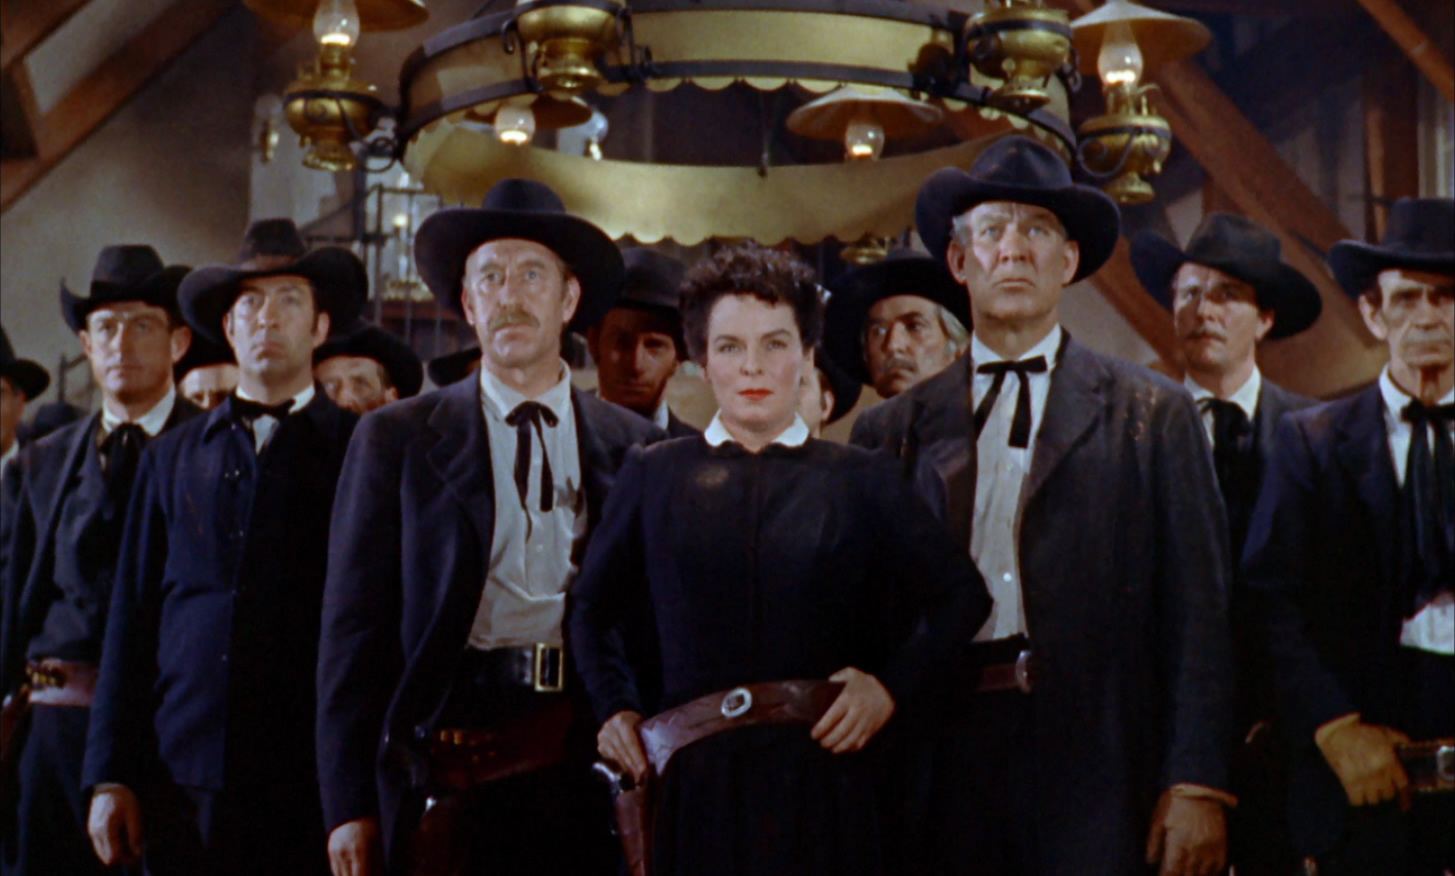 08/05/2008· nicholas ray 's johnny guitar (1954) is surely one of the most blatant psychosexual melodramas ever to disguise itself in that most commodious of genres, the western. At the Movies: Johnny Guitar (1954)